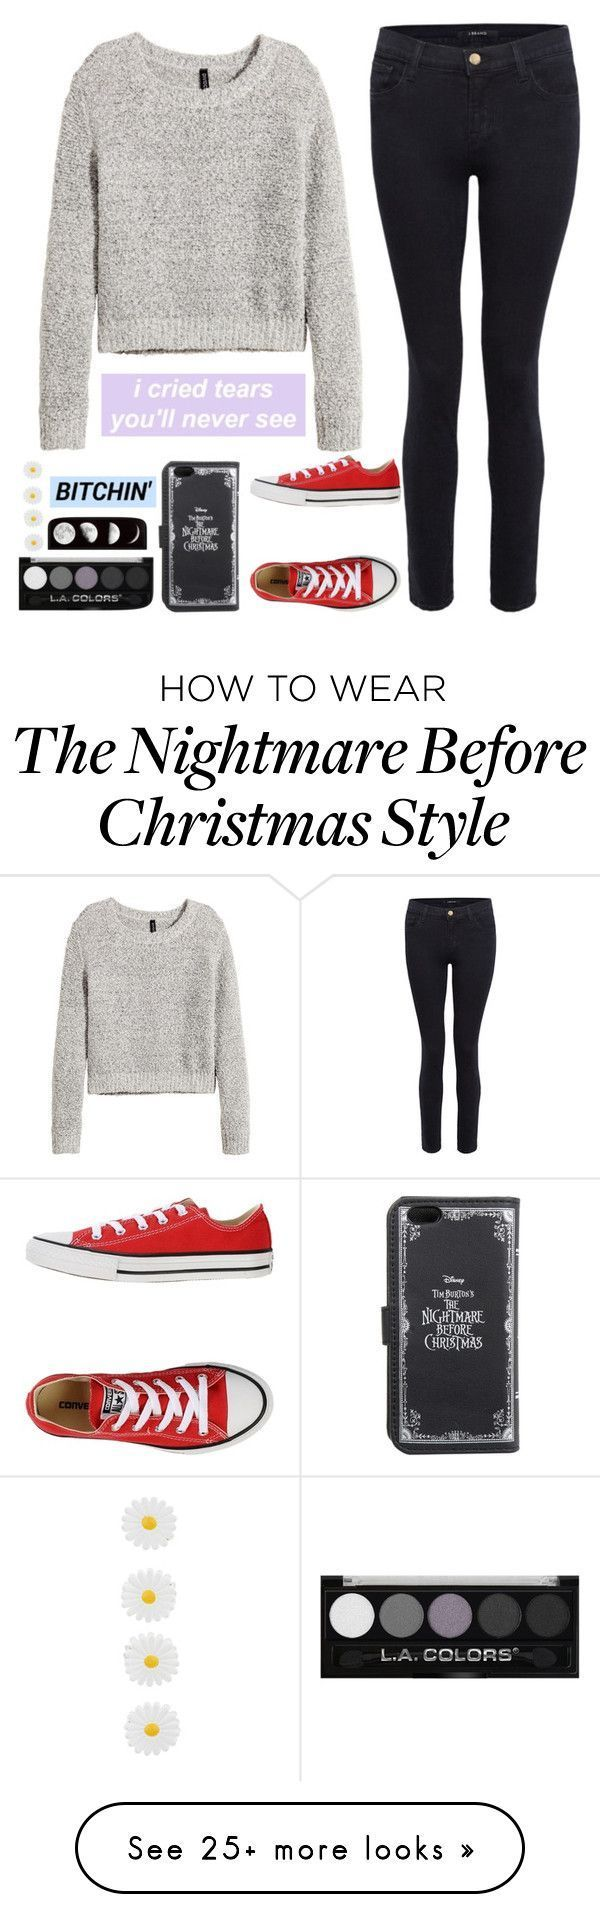 """Untitled #518"" by chill-outfits on Polyvore featuring H&M, J Brand, Converse and Accessorize"